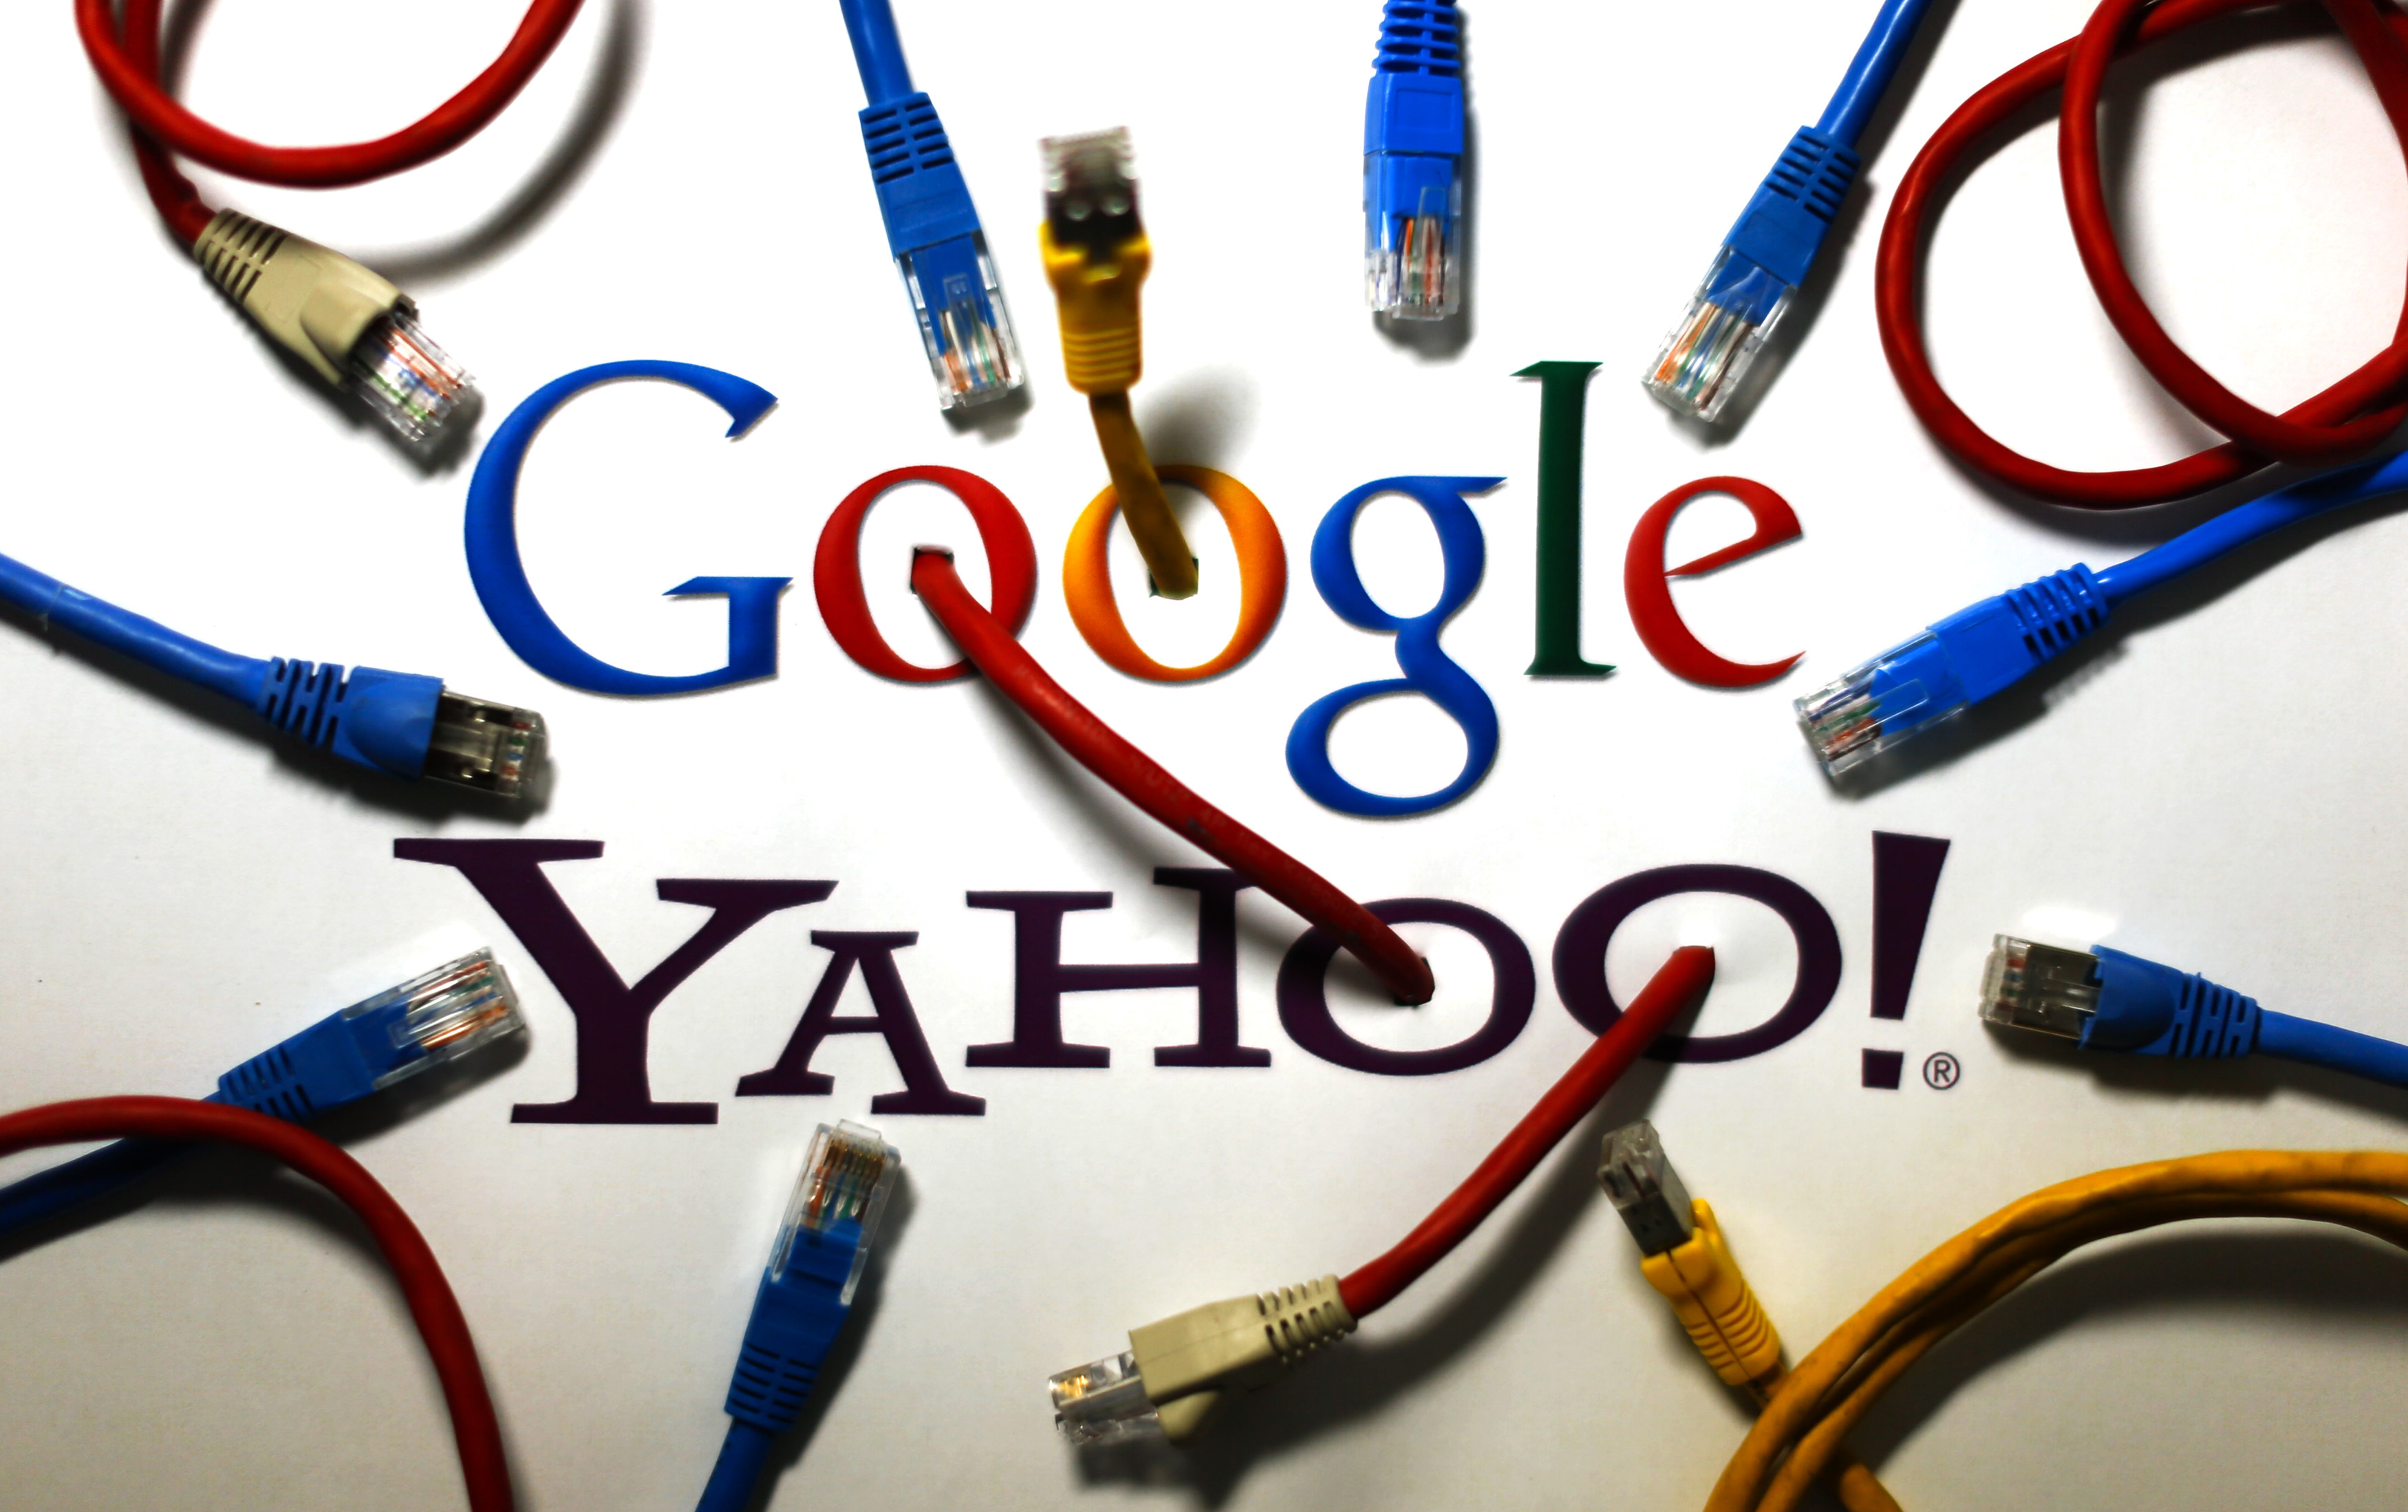 An illustration picture shows the logos of Google and Yahoo connected with LAN cables in a Berlin office October 31, 2013. The National Security Agency has tapped directly into communications links used by Google and Yahoo to move huge amounts of email and other user information among overseas data centers, the Washington Post reported on Wednesday. The report, based on secret NSA documents leaked by former contractor Edward Snowden, appears to show the agency has used weak restrictions on its overseas activities to exploit major U.S. companies' data to a far greater extent than realized.  This logo has been updated and is no longer in use.This logo has been updated and is no longer in use.  REUTERS/Pawel Kopczynski (GERMANY - Tags: POLITICS BUSINESS TELECOMS) - BM2E9AV0WDJ01